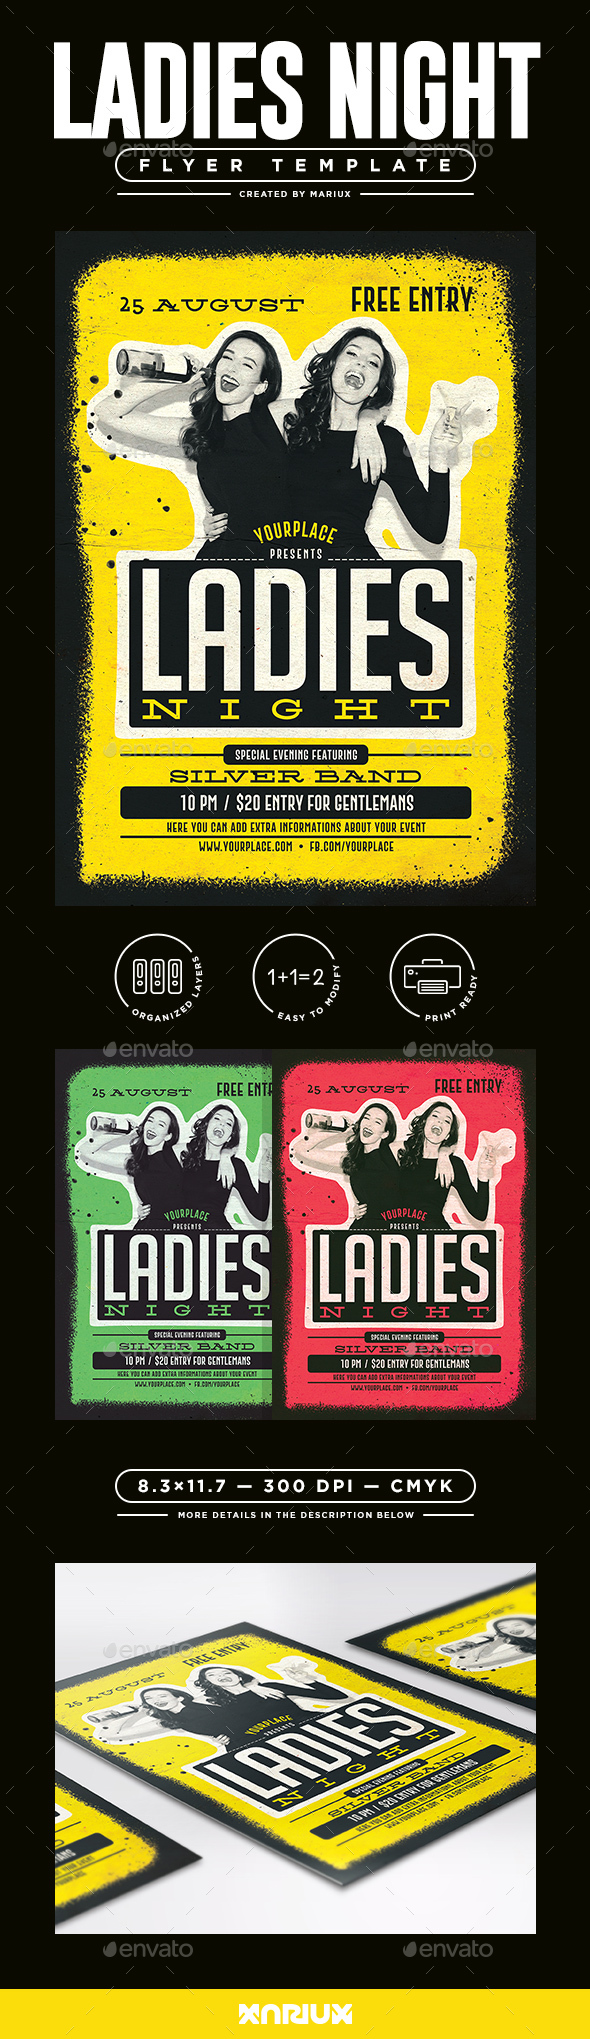 Ladies Night Flyer/Poster - Clubs & Parties Events